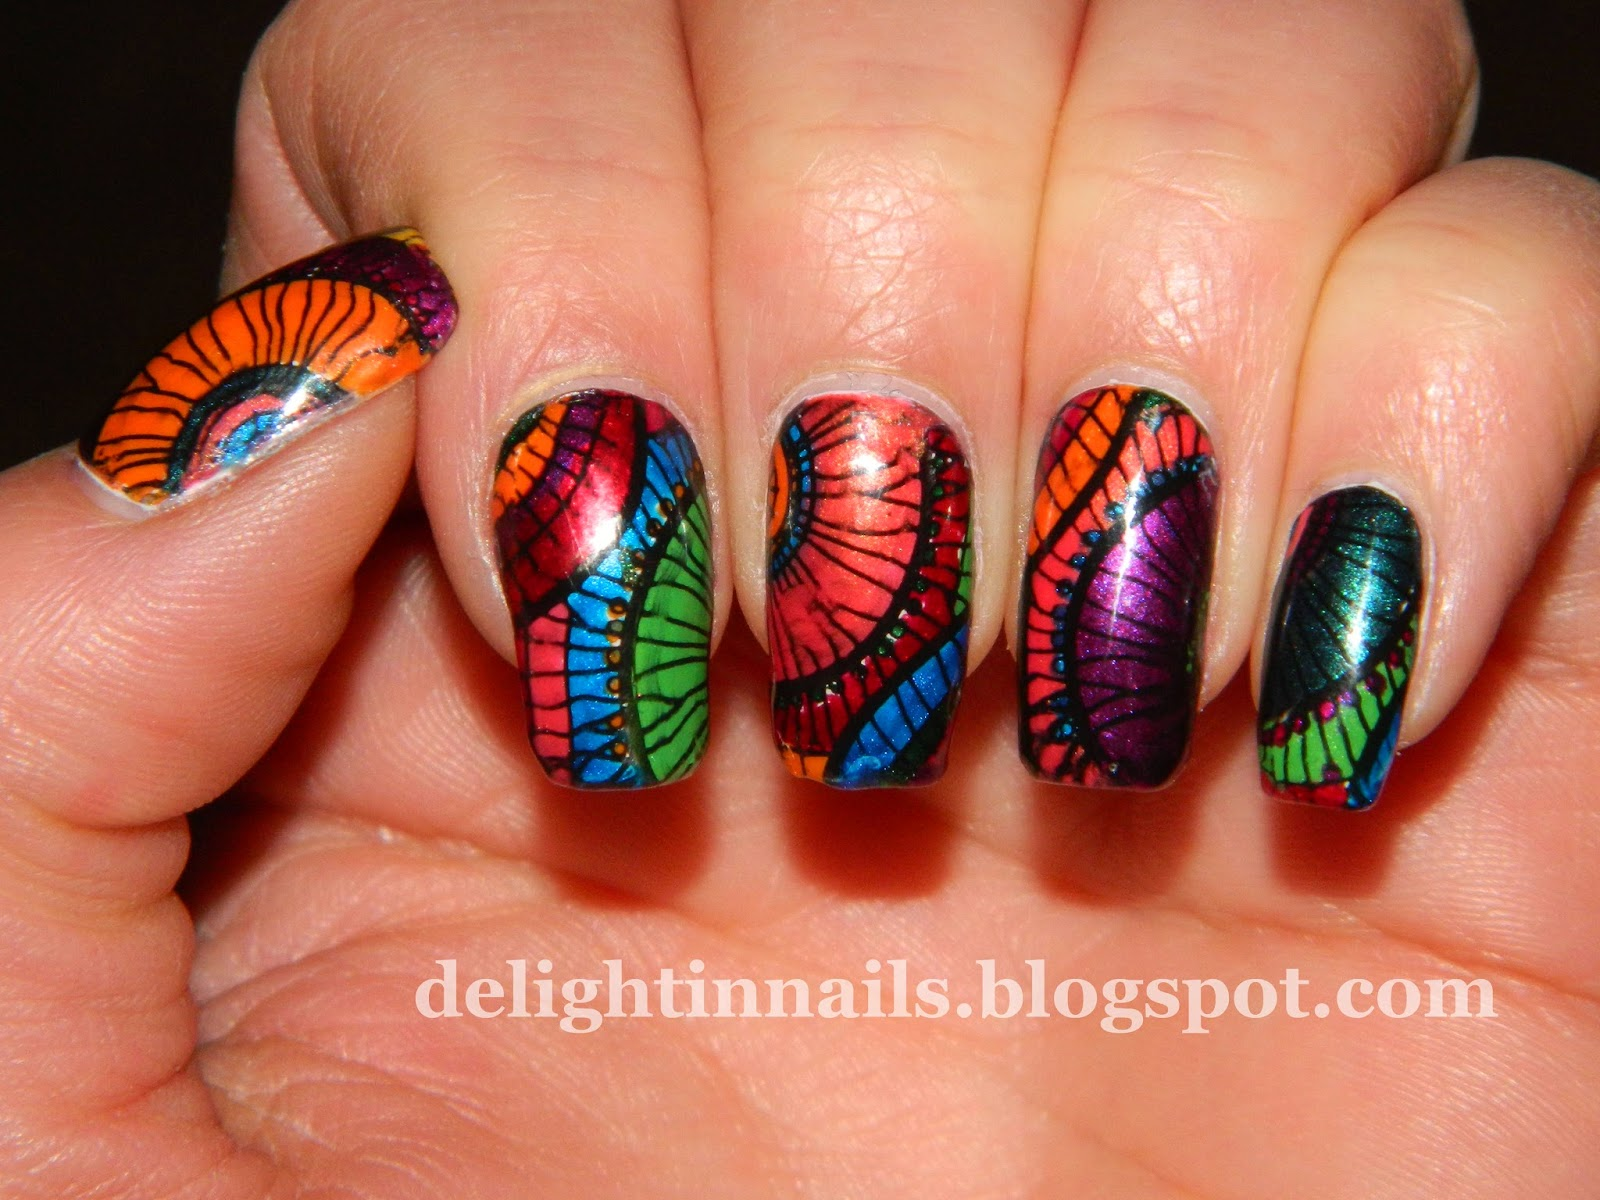 Delight In Nails: Nail-Art-A-Go-Go Day 2 = Jewel Tones!